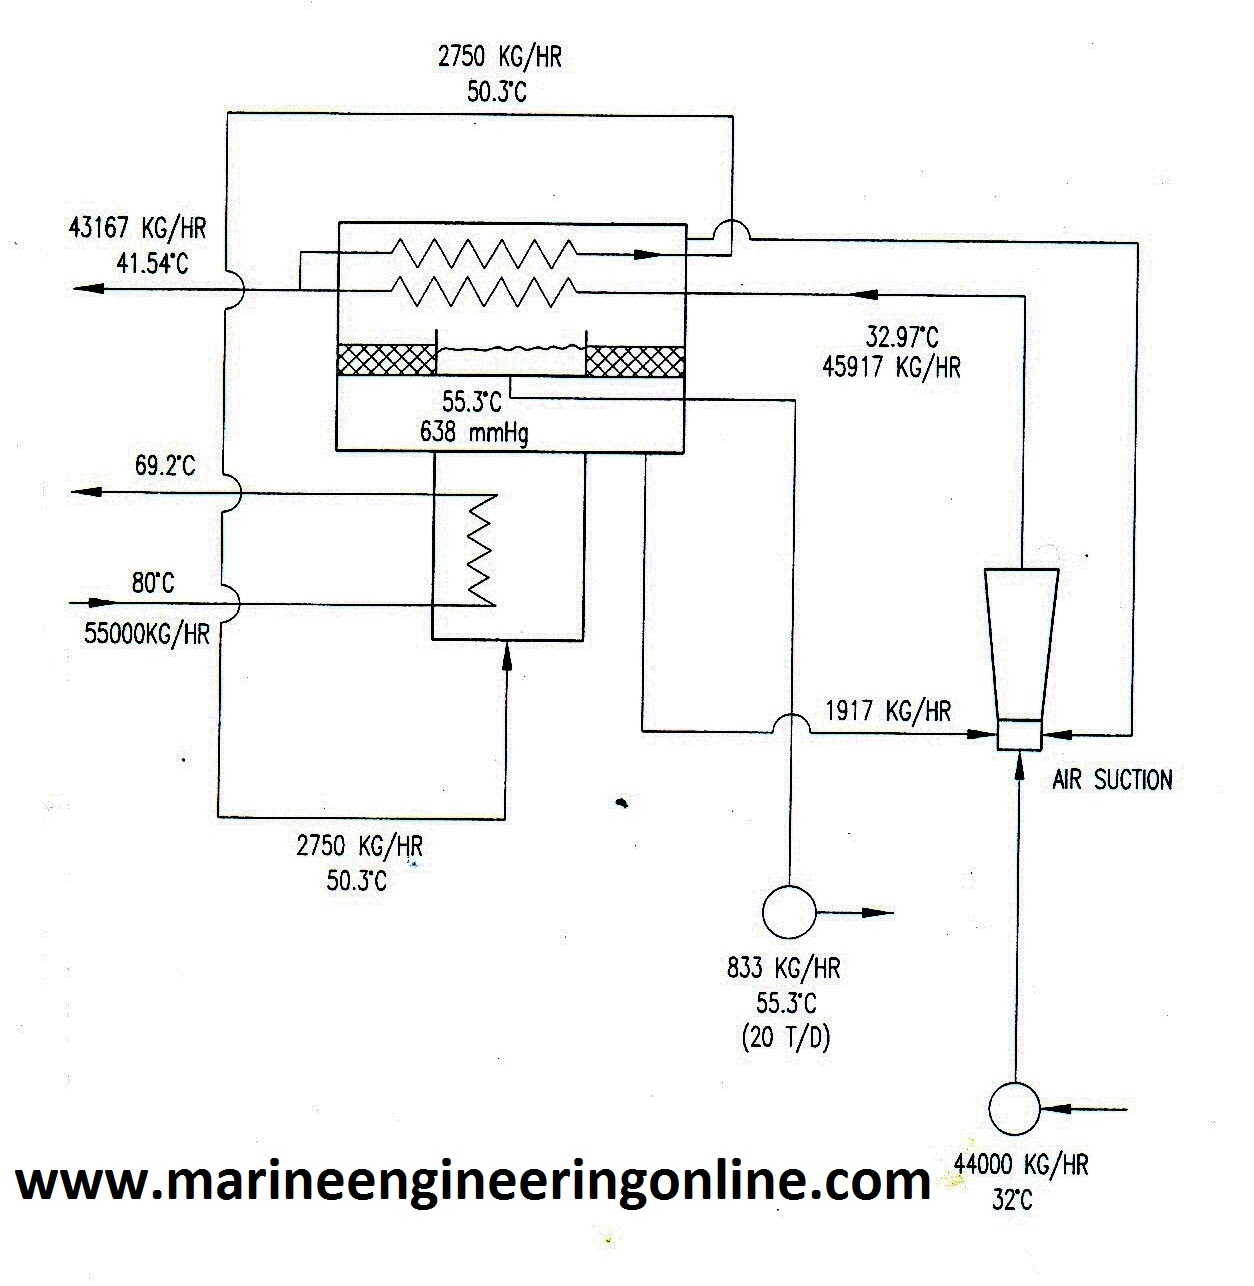 Salt Water Engine Diagram Free Wiring For You Troy Bilt Super Bronco Library Rh 22 Budoshop4you De 1998 Southwind Rv Disposal System